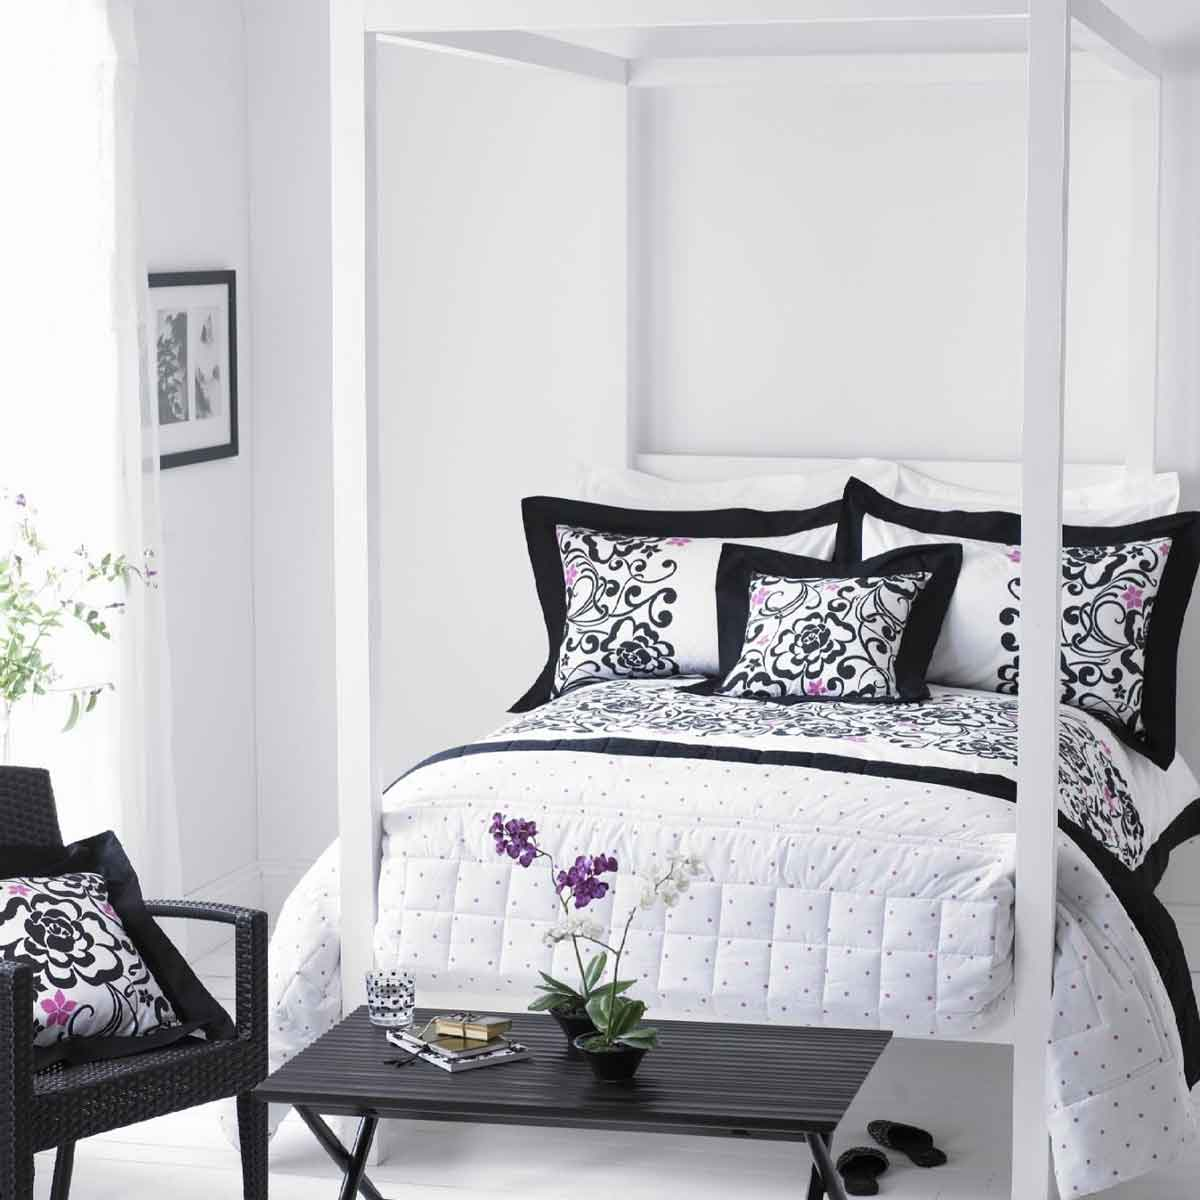 Black And White Bedroom Decorating Ideas Dream House Experience